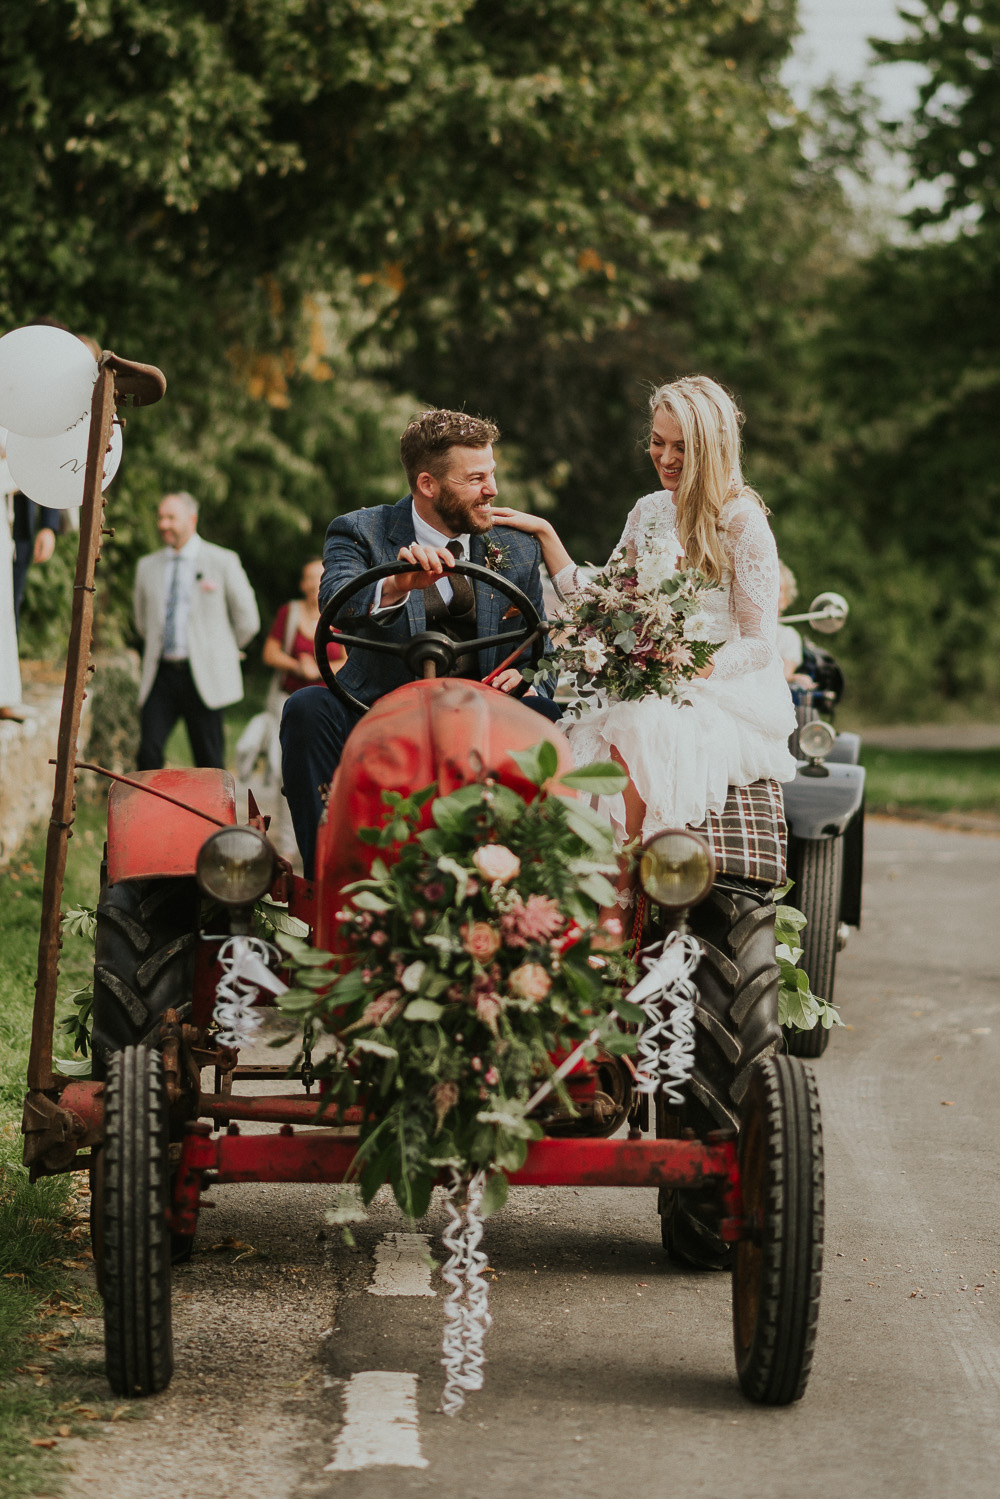 Family Home Wedding In The Cotswolds With Vintage Porsche Tractor Bride